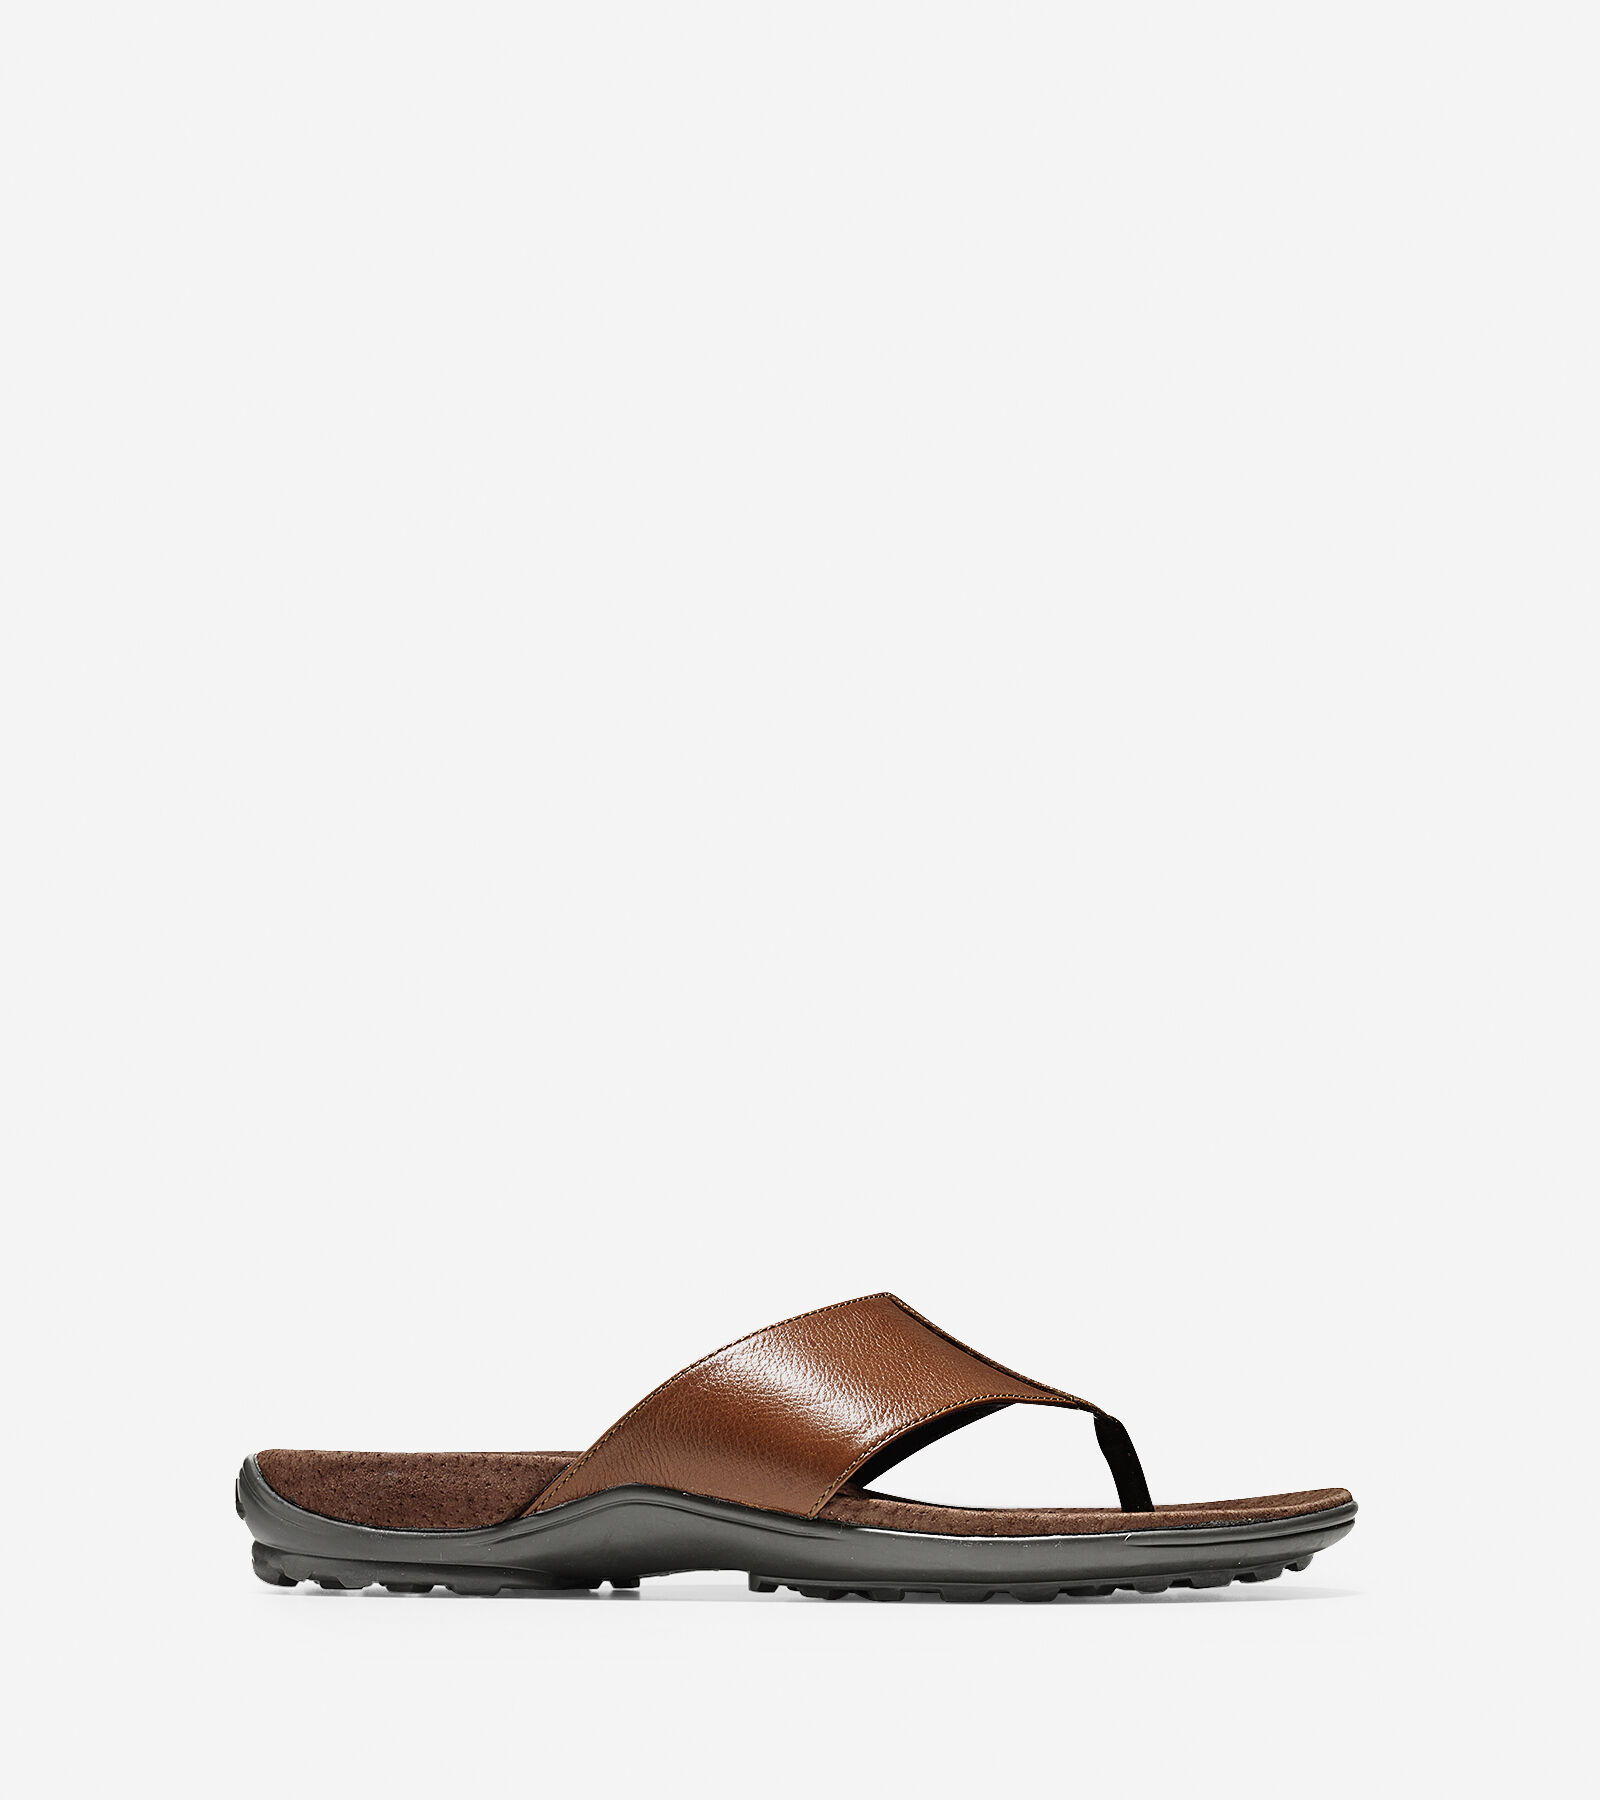 Cole Haan Leather Thong Sandals buy cheap best prices BPlVR